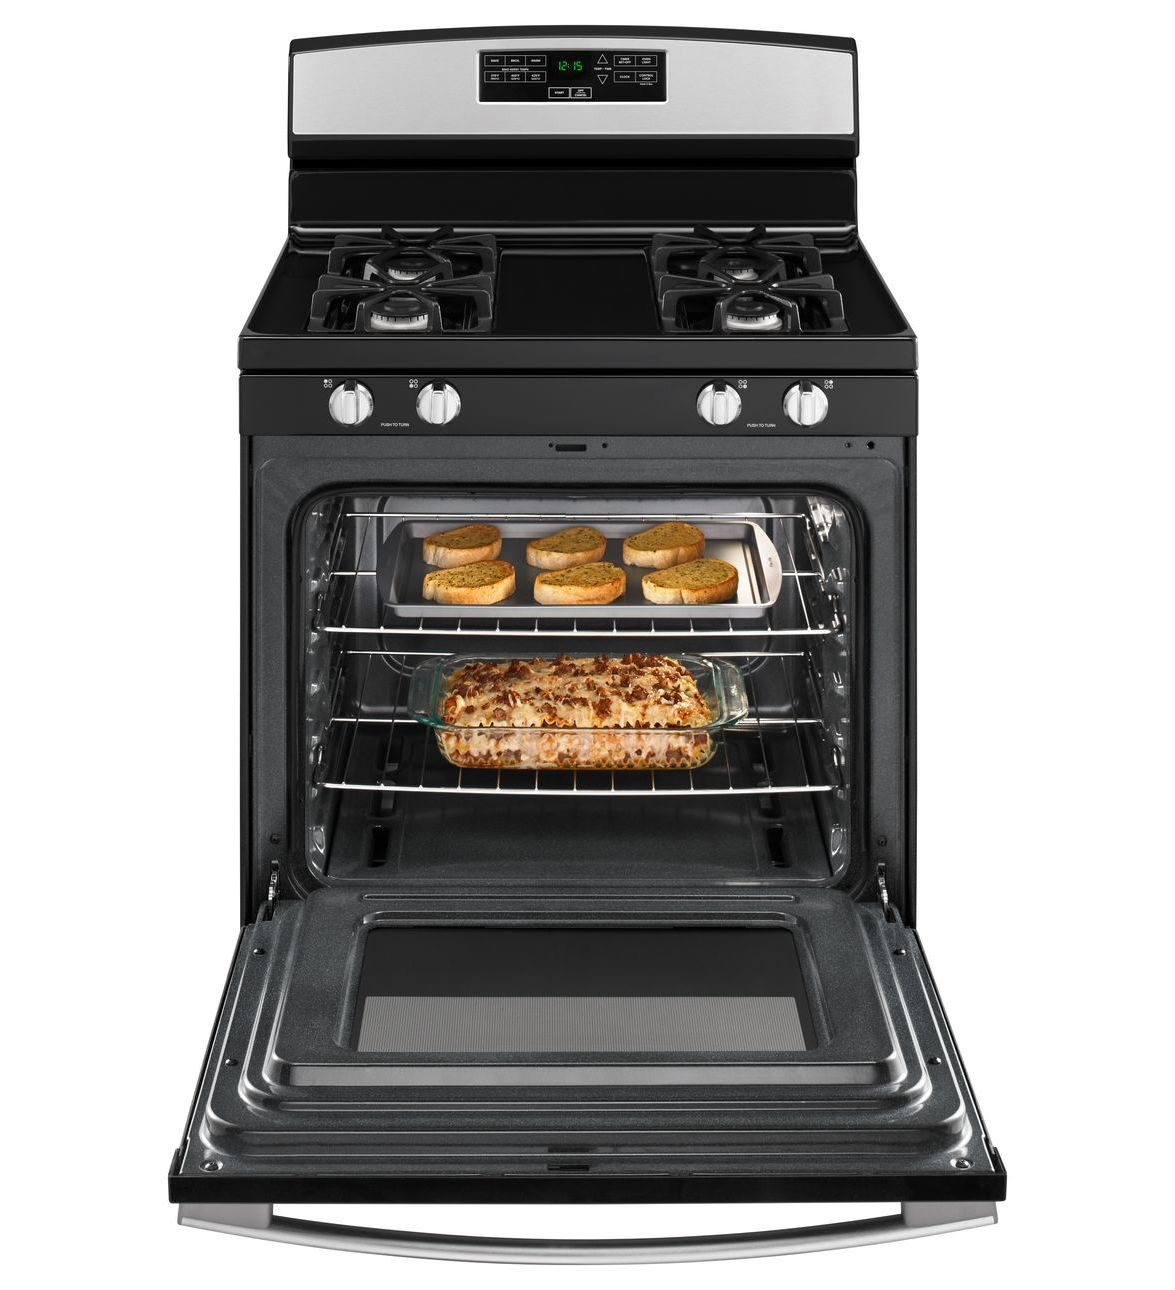 p ft depot home oven single with steel stainless cu kitchenaid the self convection toaster in ranges range electric cleaning